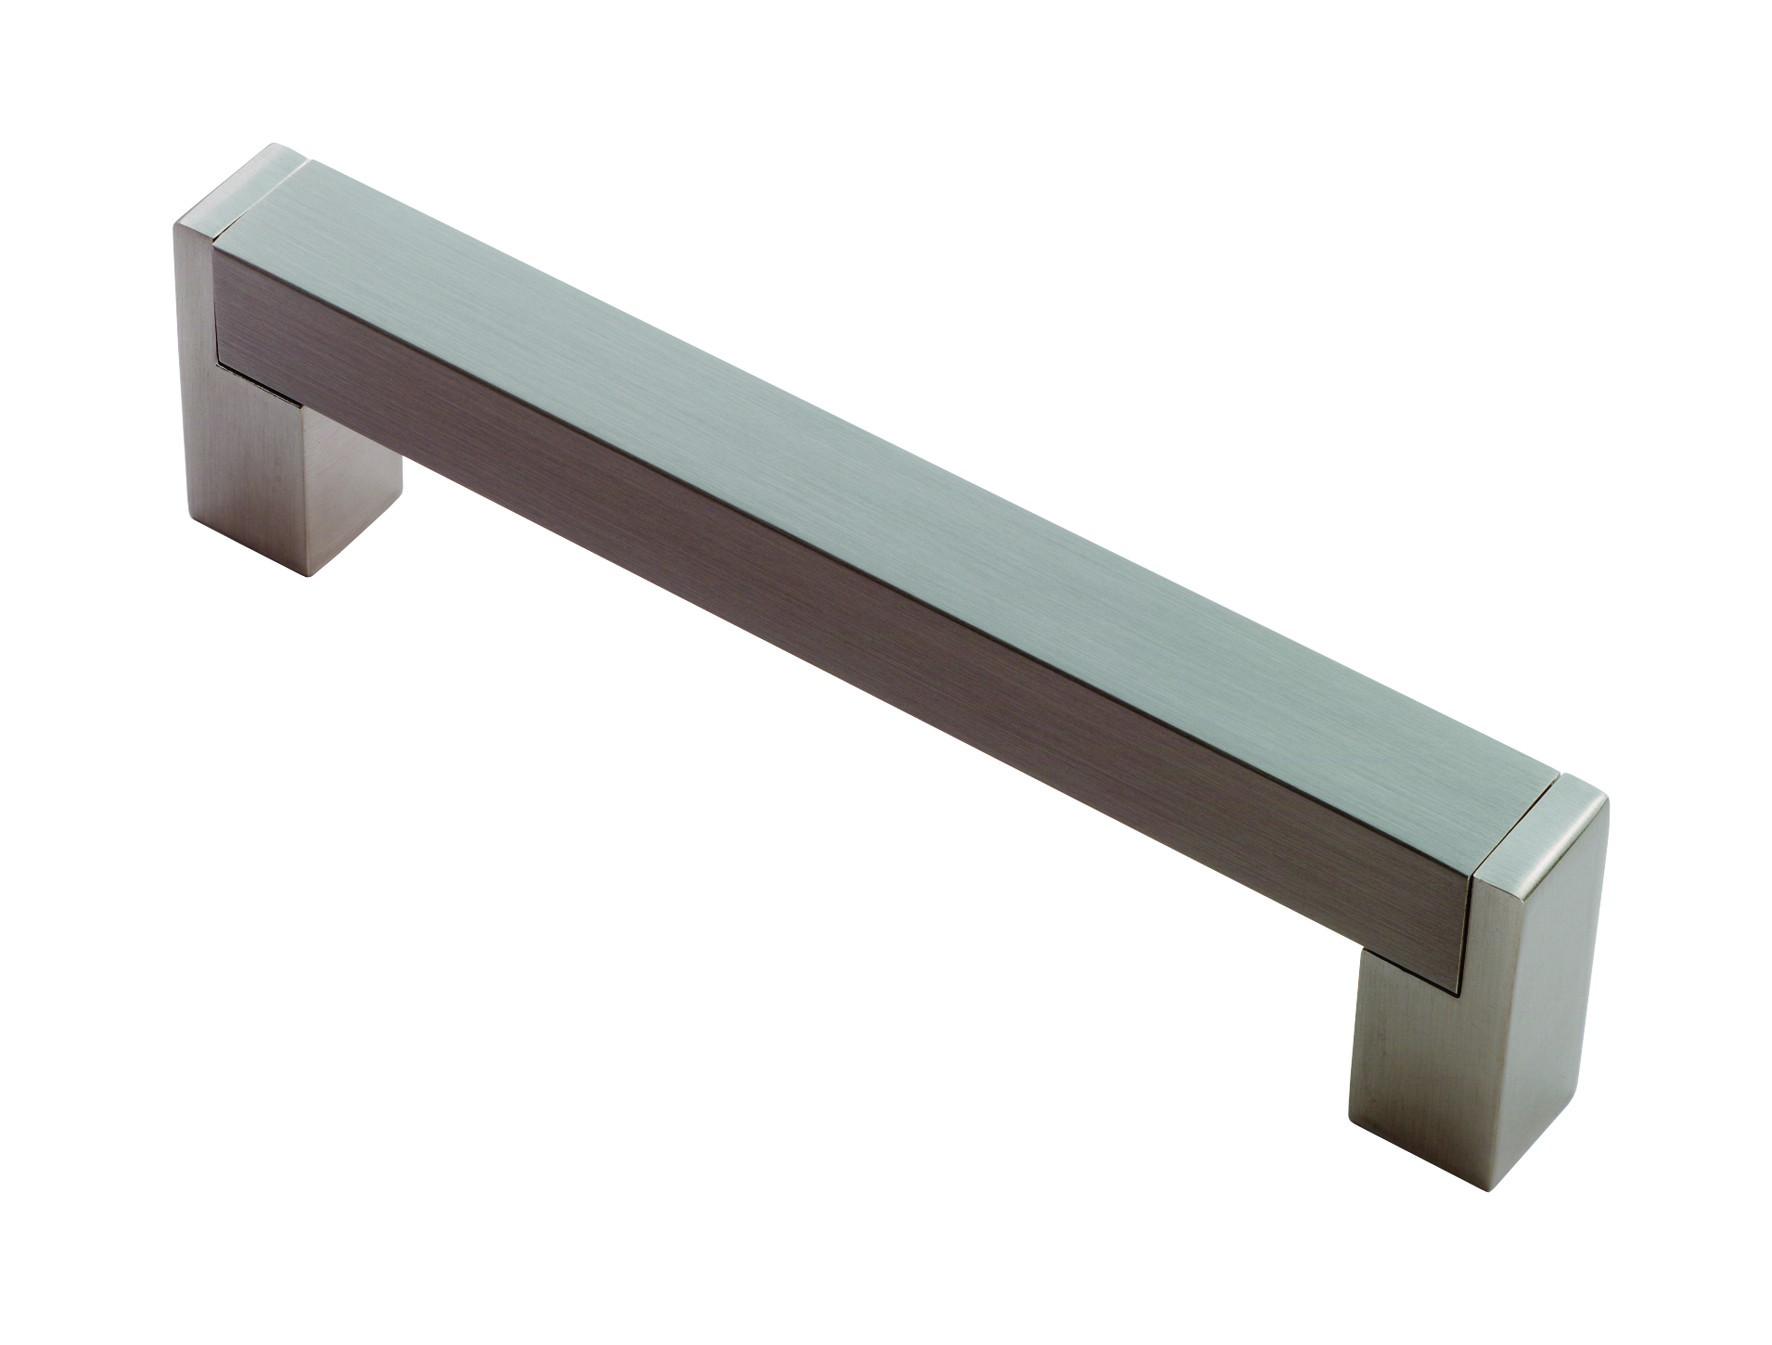 Square section D handle 224mm centres satin nickel